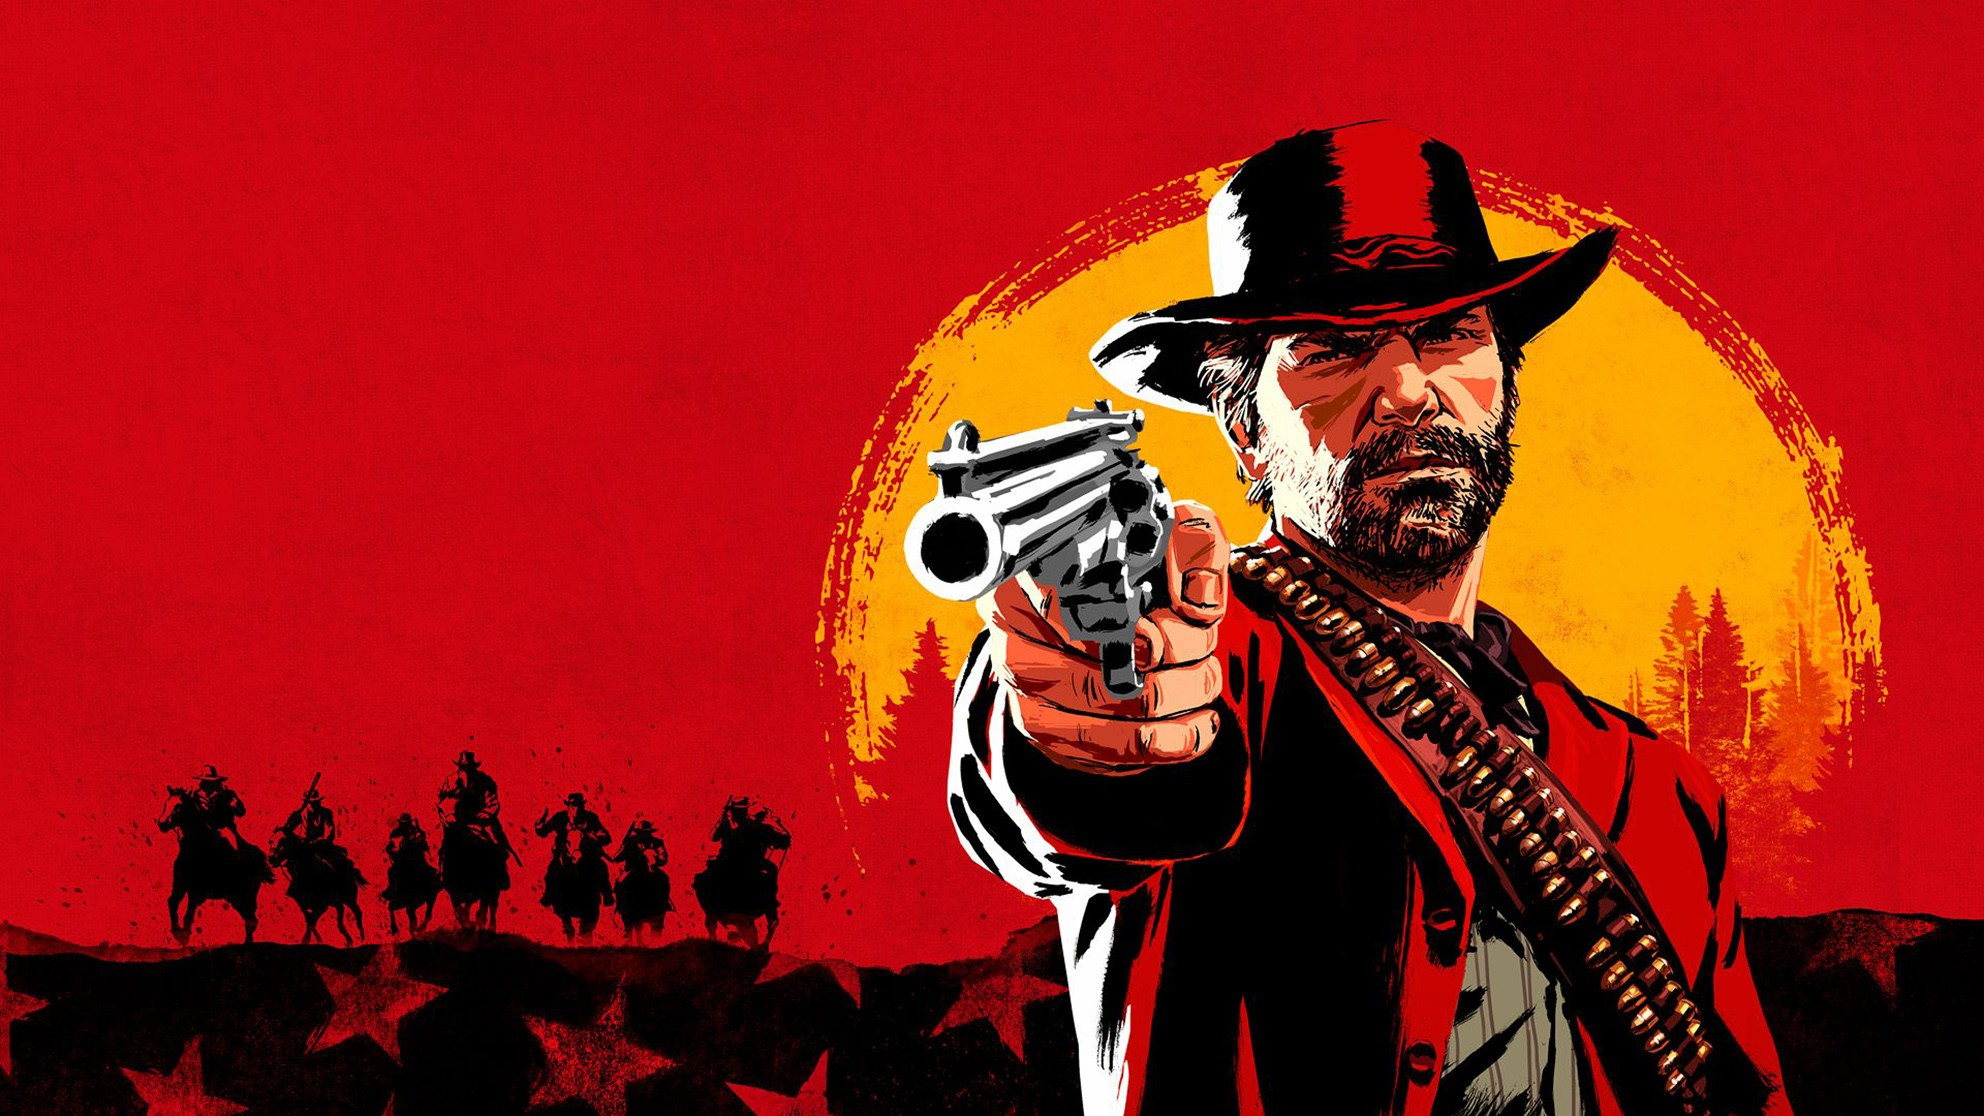 Did Red Dead Redemption 2 disappoint you as well?